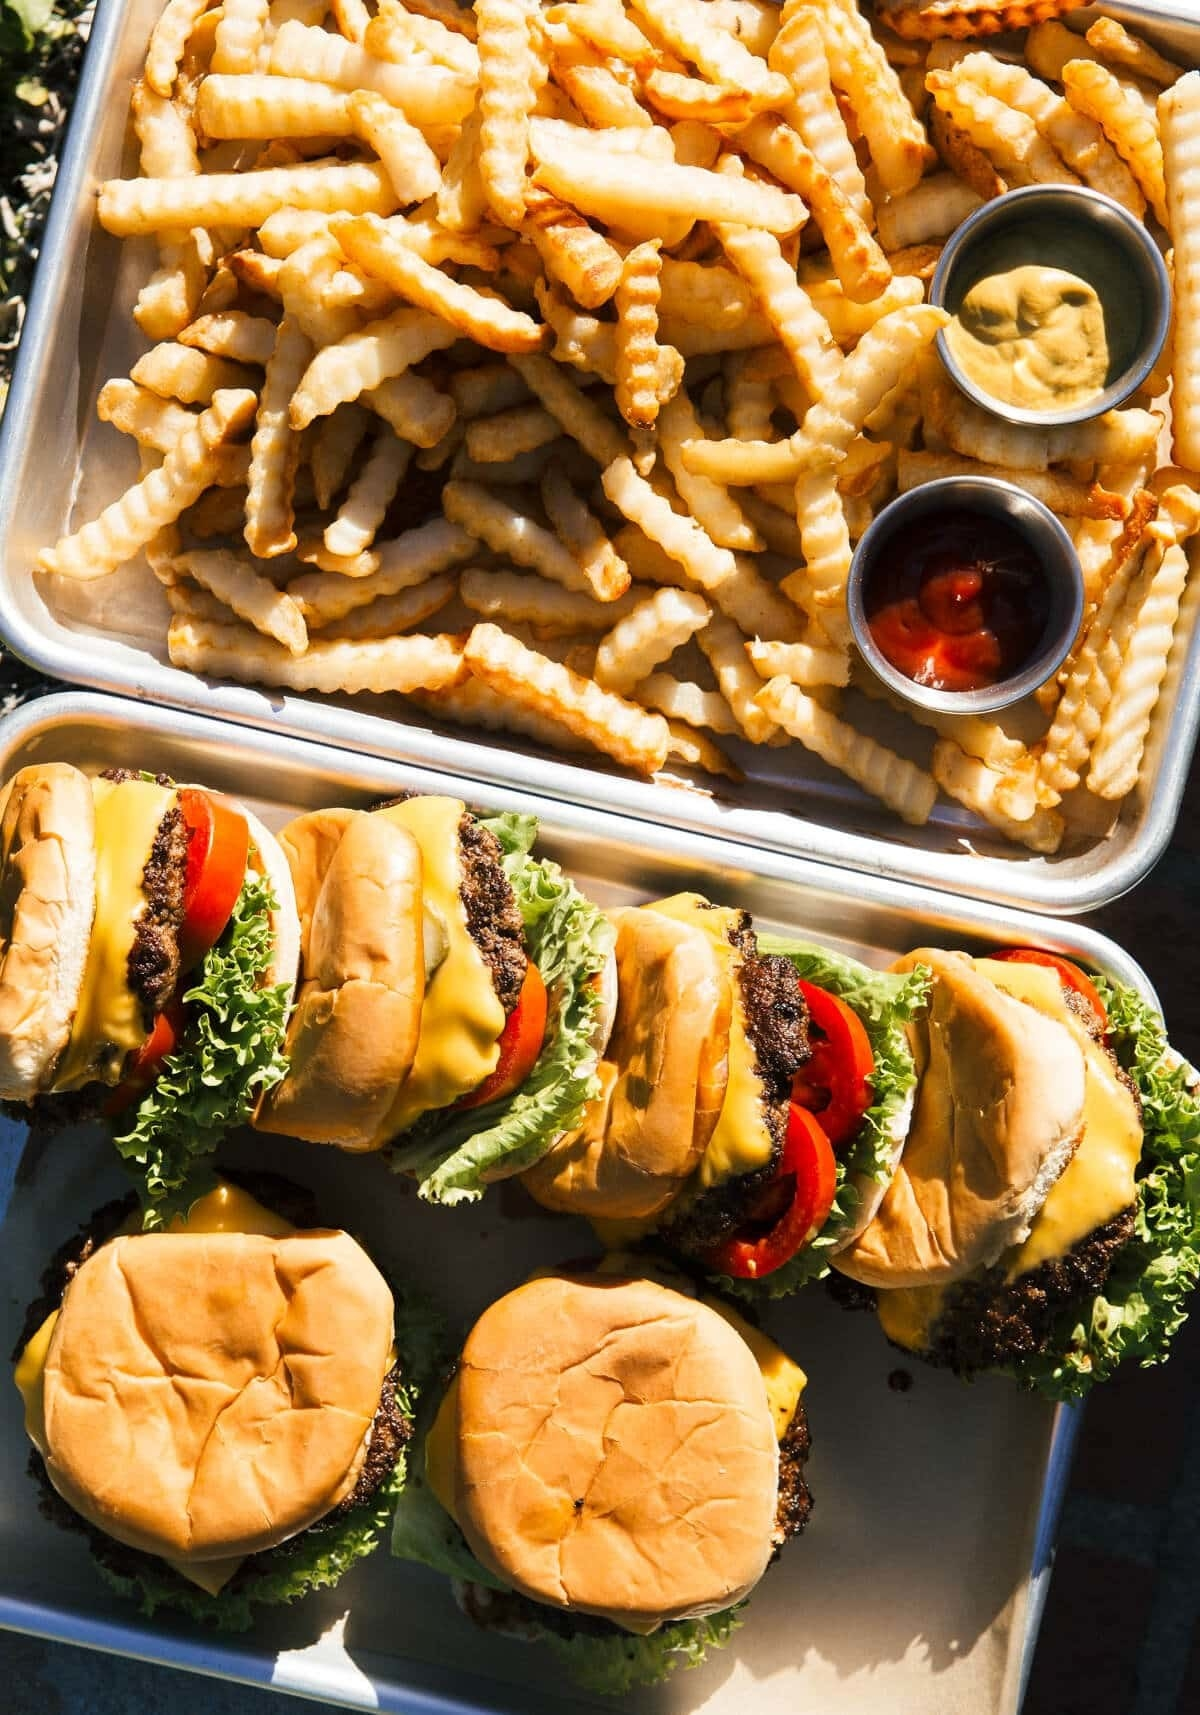 A platter of shake shack inspired cheeseburgers with lettuce and tomato and crinkle-cut fries.